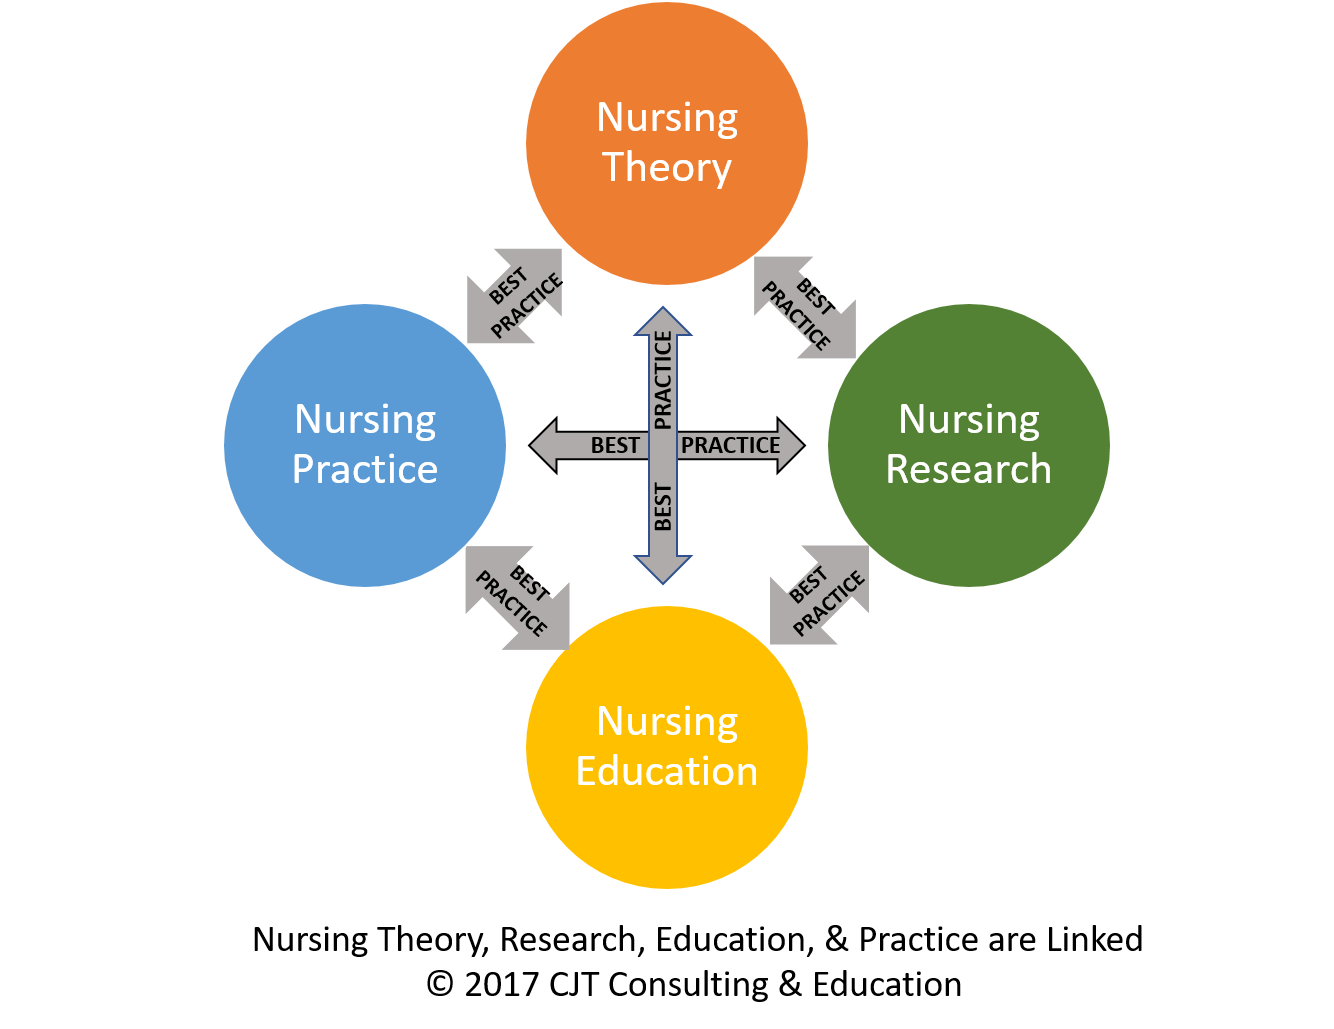 managerial leadership role for nurses use of research evidence essay Nursing practice and work environment issues in the 21st century: a leadership challenge nursing research, 57(1),  nursing management and leadership .